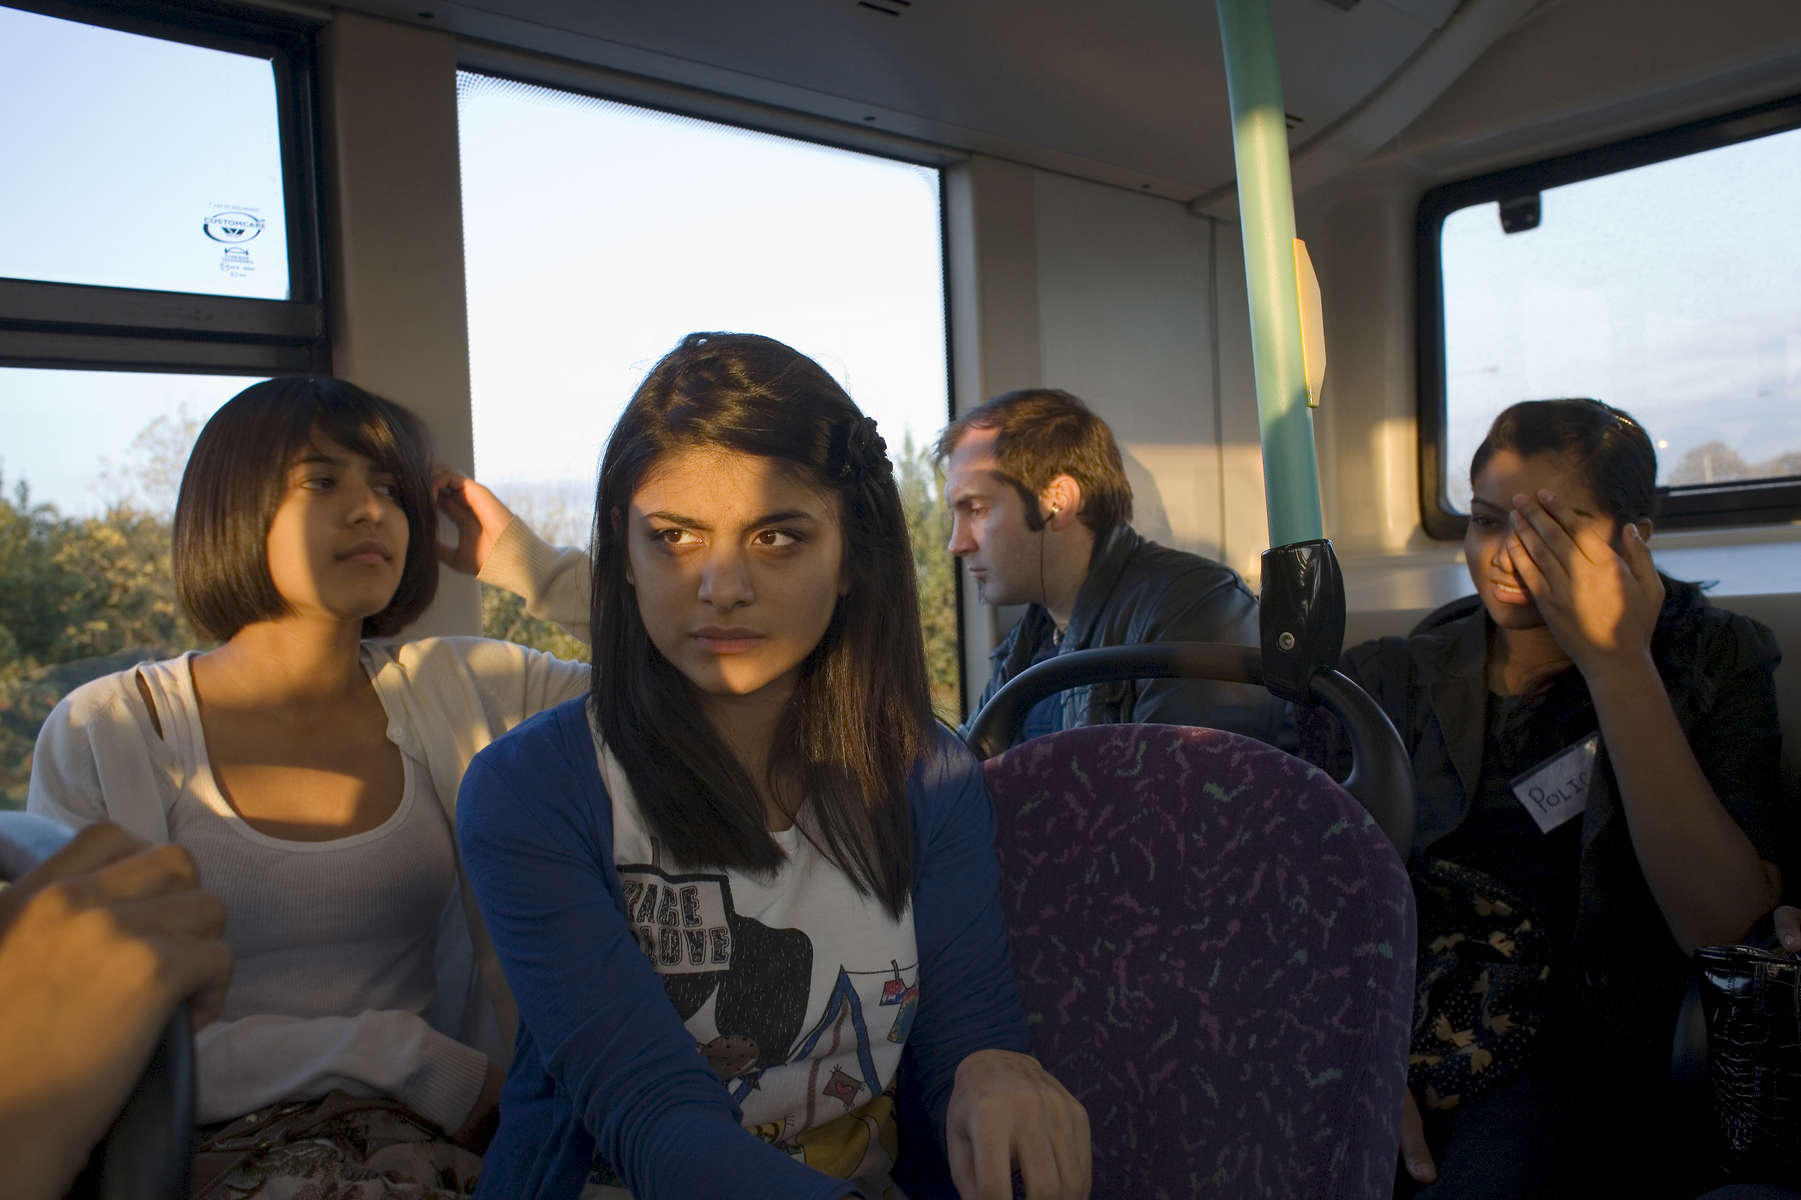 Laiba Abassi (2nd right) and Robyn Kullar (left) on the bus to The Beck Theatre where Laiba will perfom as Adriana and Robyn as Luciana in a production of William Shakespeare's 'Comedy of Errors' as part of the 10th Anniversary Shakespeare School Festival. Laiba (15) a Muslim and Robyn Kullar (15) a Sikh are very close friends and pupils at Villiers High School in Southall.Villiers High School is in the town of Southall. It has a very wide ethnic diversity. 45 different 1st spoken languages are listed among the 1208 pupils. 25 ethnic groups are represented with Indian, Pakistani and Black-Somali the three highest.Southall is a suburban district of West London, England. The town has one of the largest concentrations of South Asian people outside of the Indian sub-continent. Over 55% os Southall's population of 70,000 is Indian/Pakistani, with less than 10% being White British.